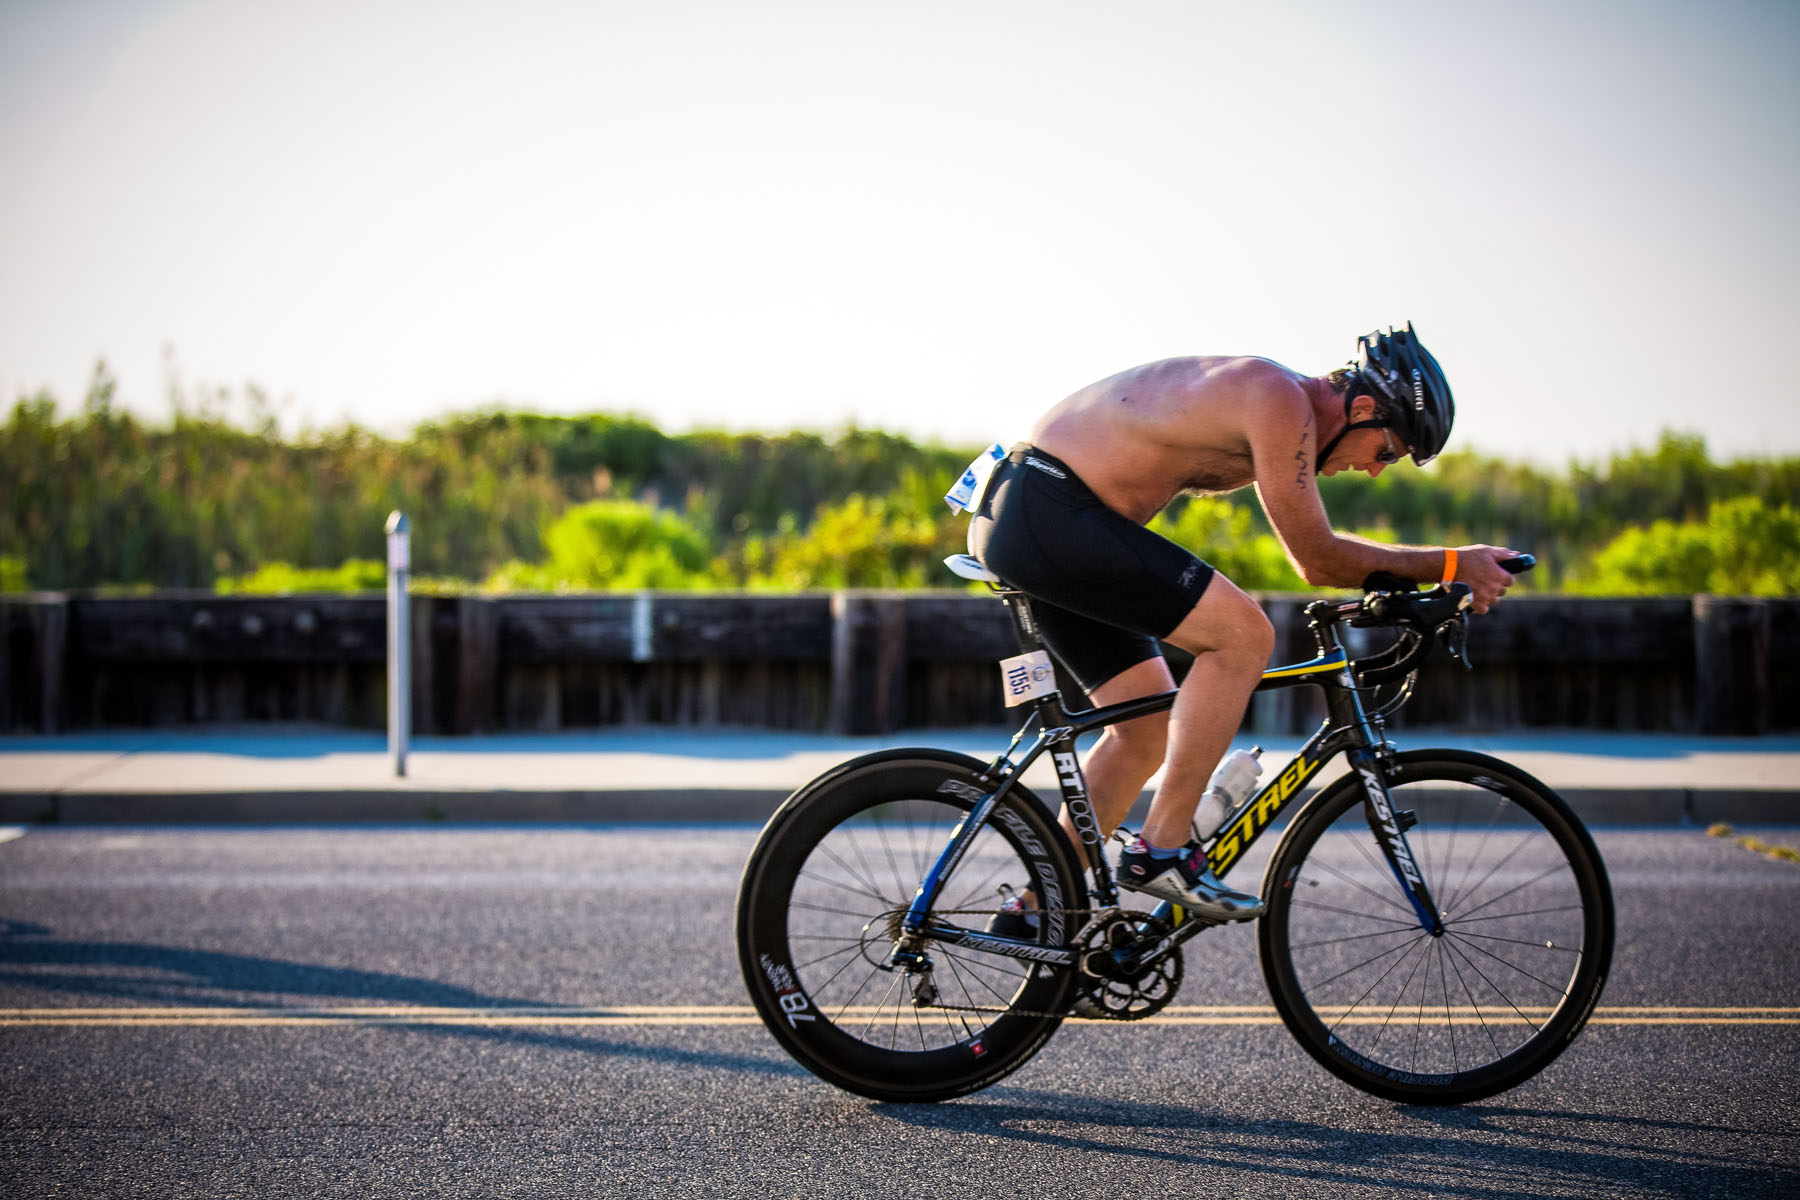 Tri The Wildwoods New Jersey Triathlon - Biking shirtless enjoy the beach sun rays